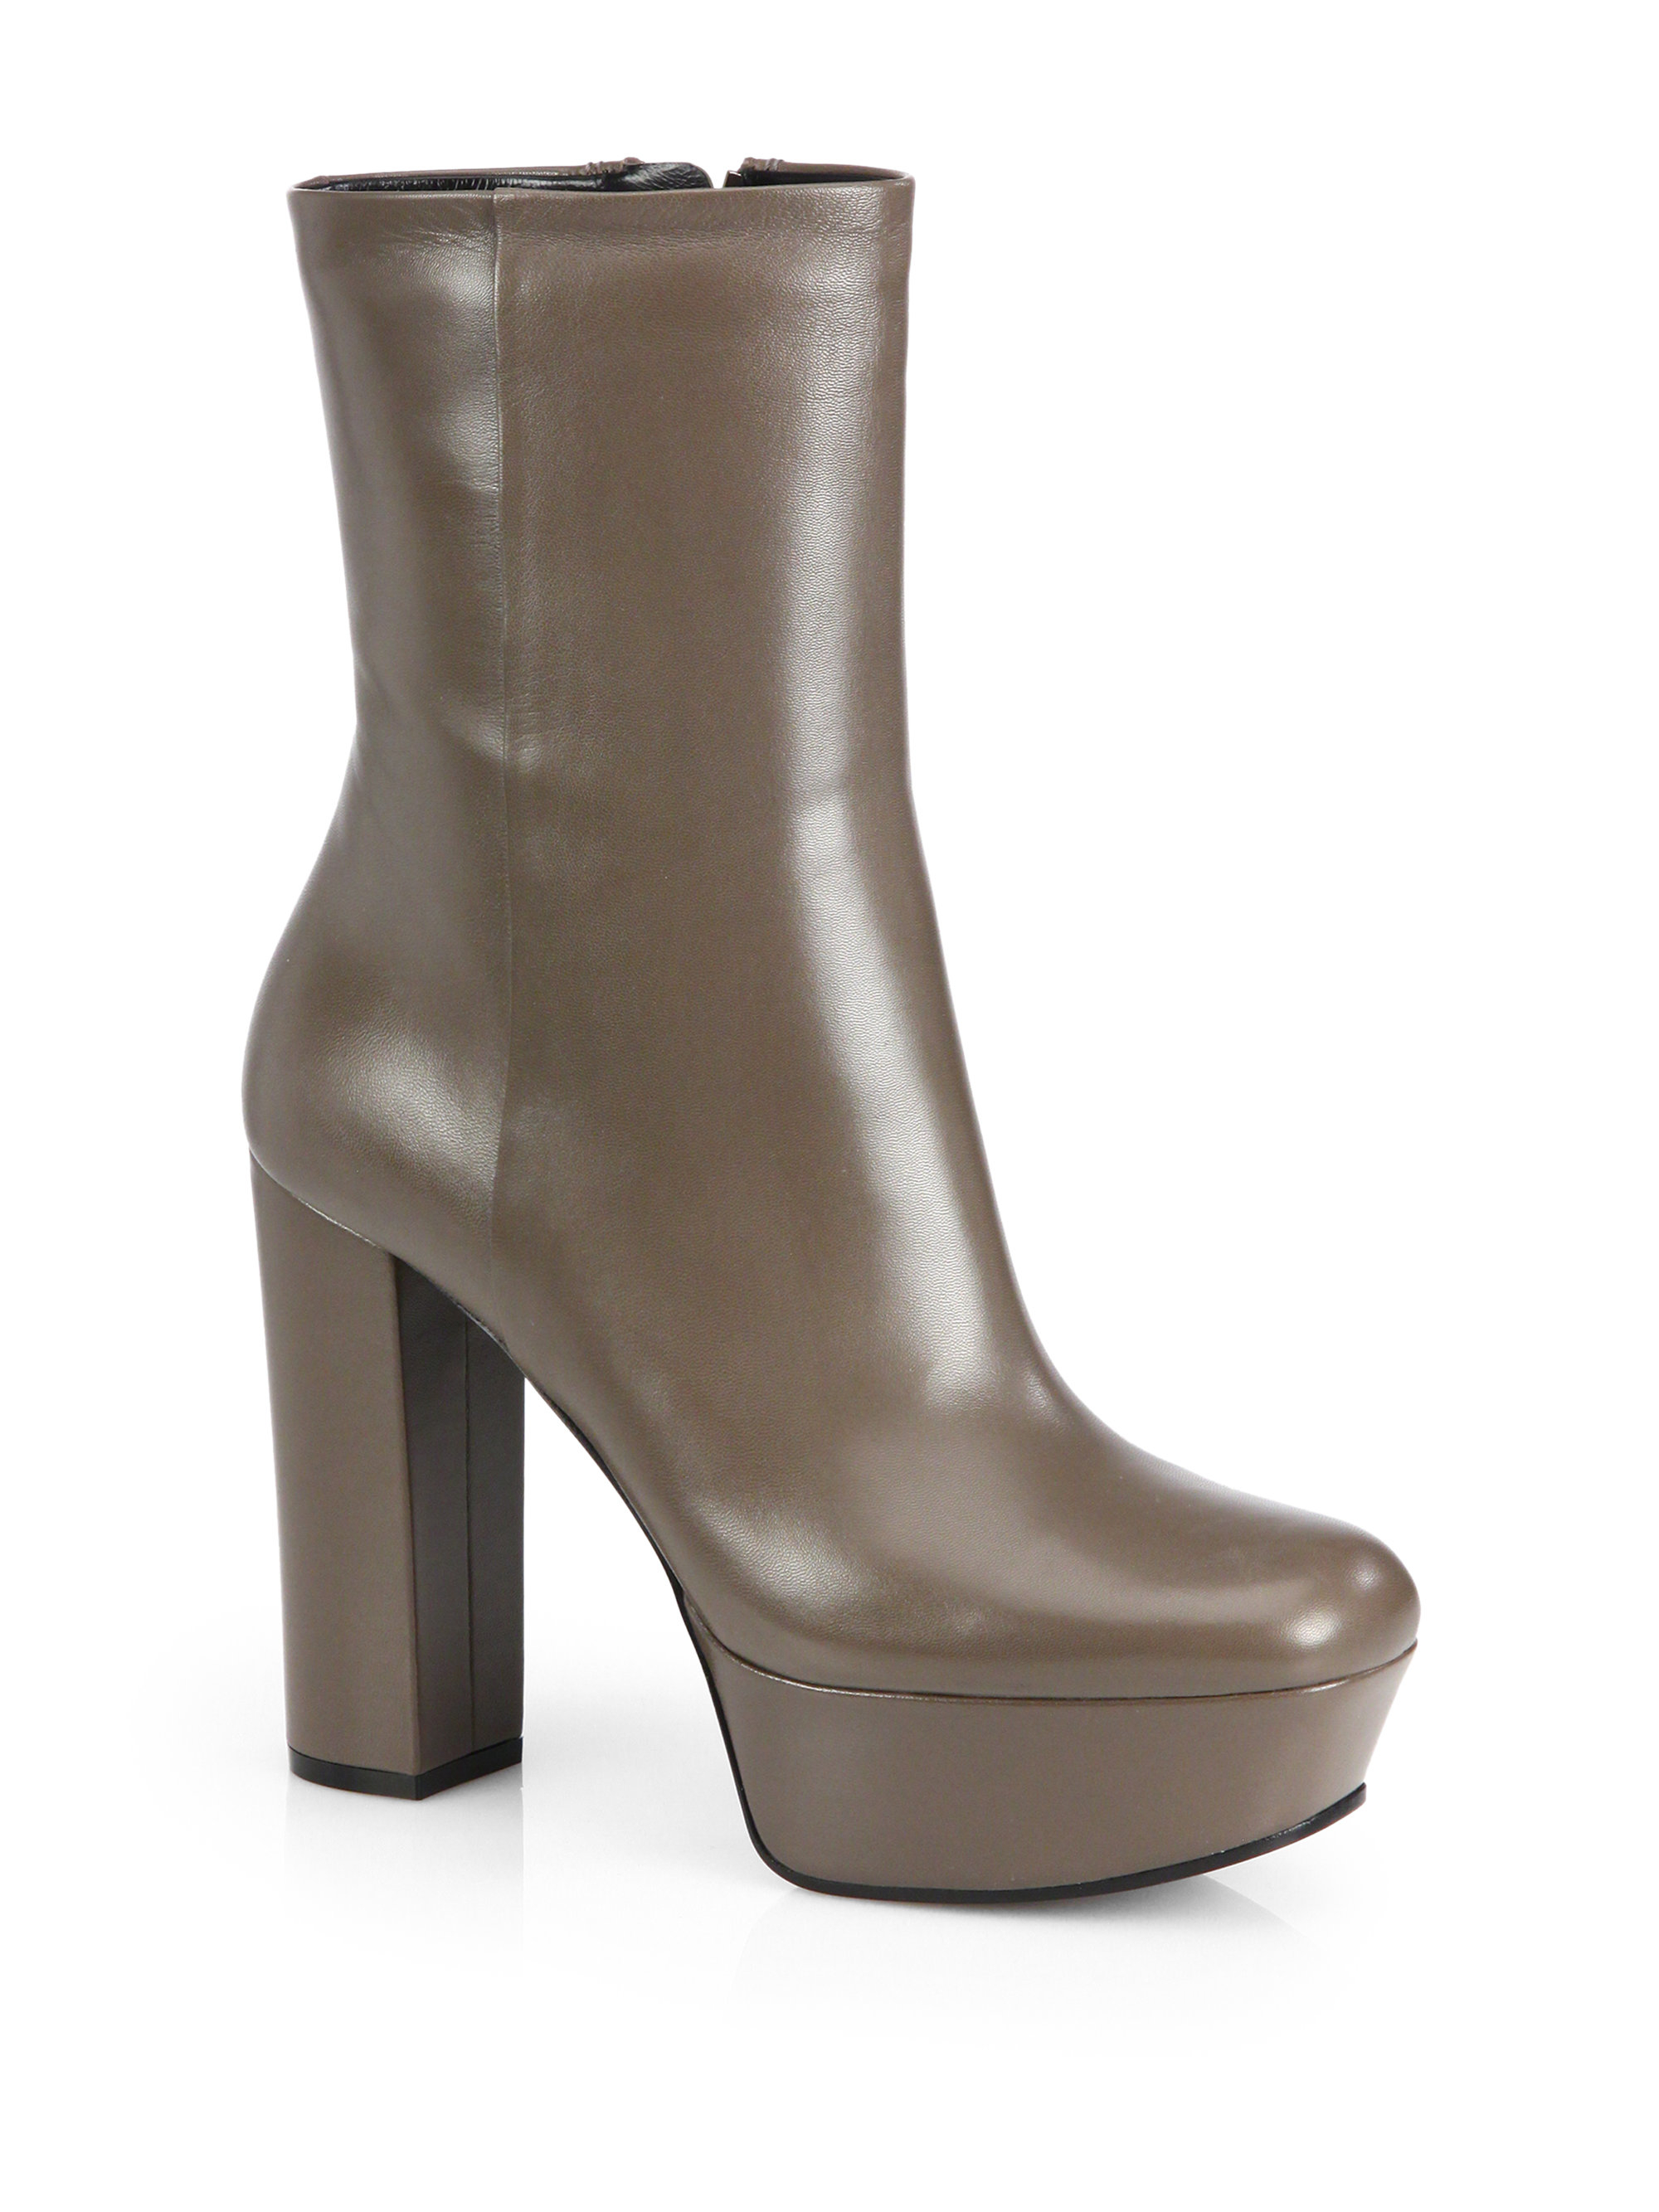 933b7365b Gucci Leather Platform Ankle Boots in Gray - Lyst